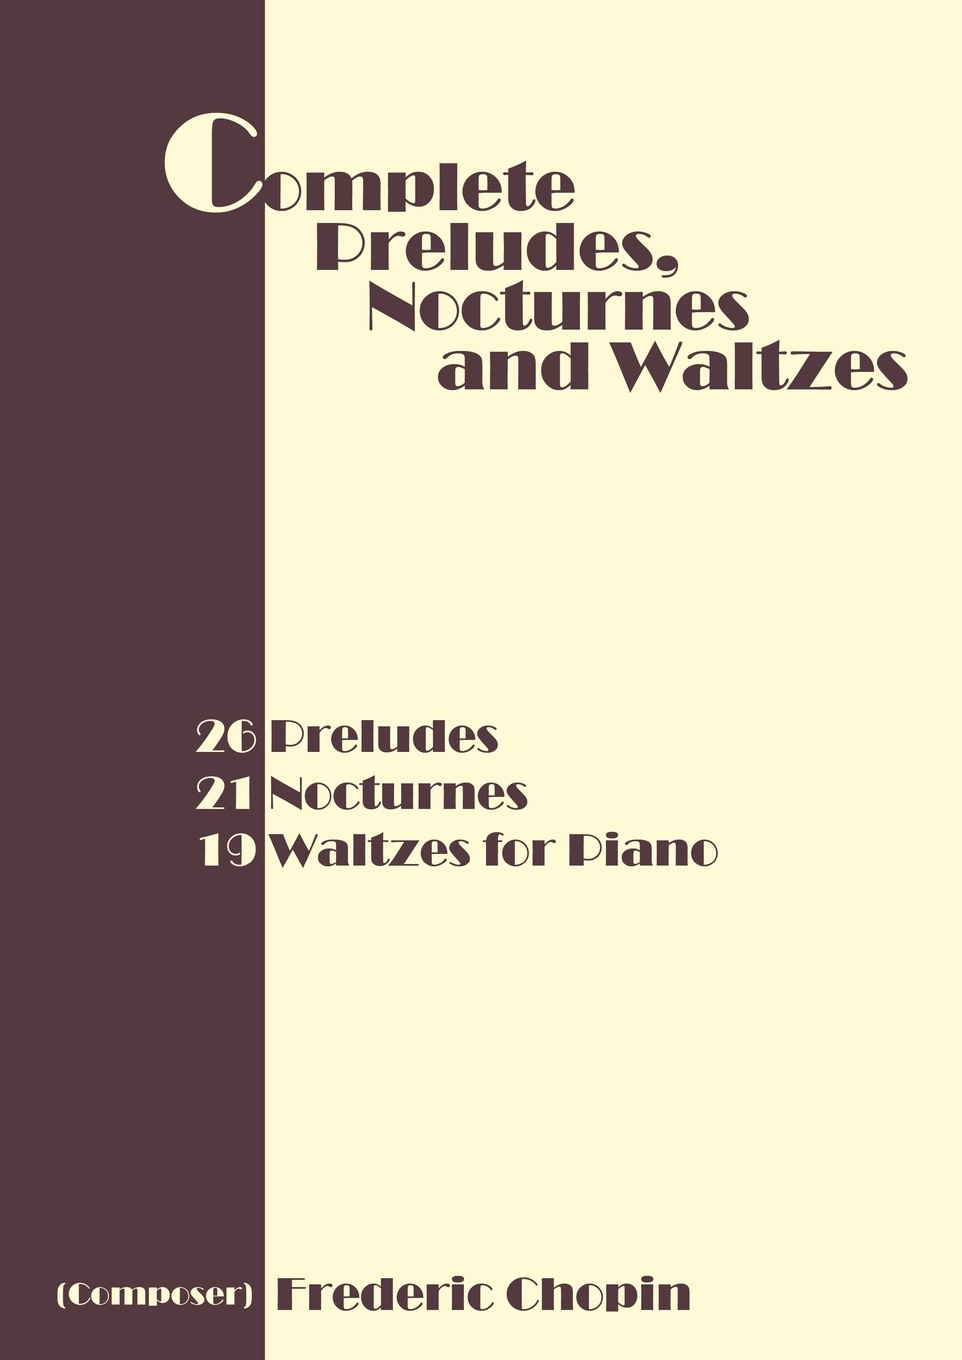 Complete Preludes, Nocturnes and Waltzes. 26 Preludes, 21 Nocturnes, 19 Waltzes for Piano jens luhr jens luhr kuhlau sonata in e flat major sonata in a minor